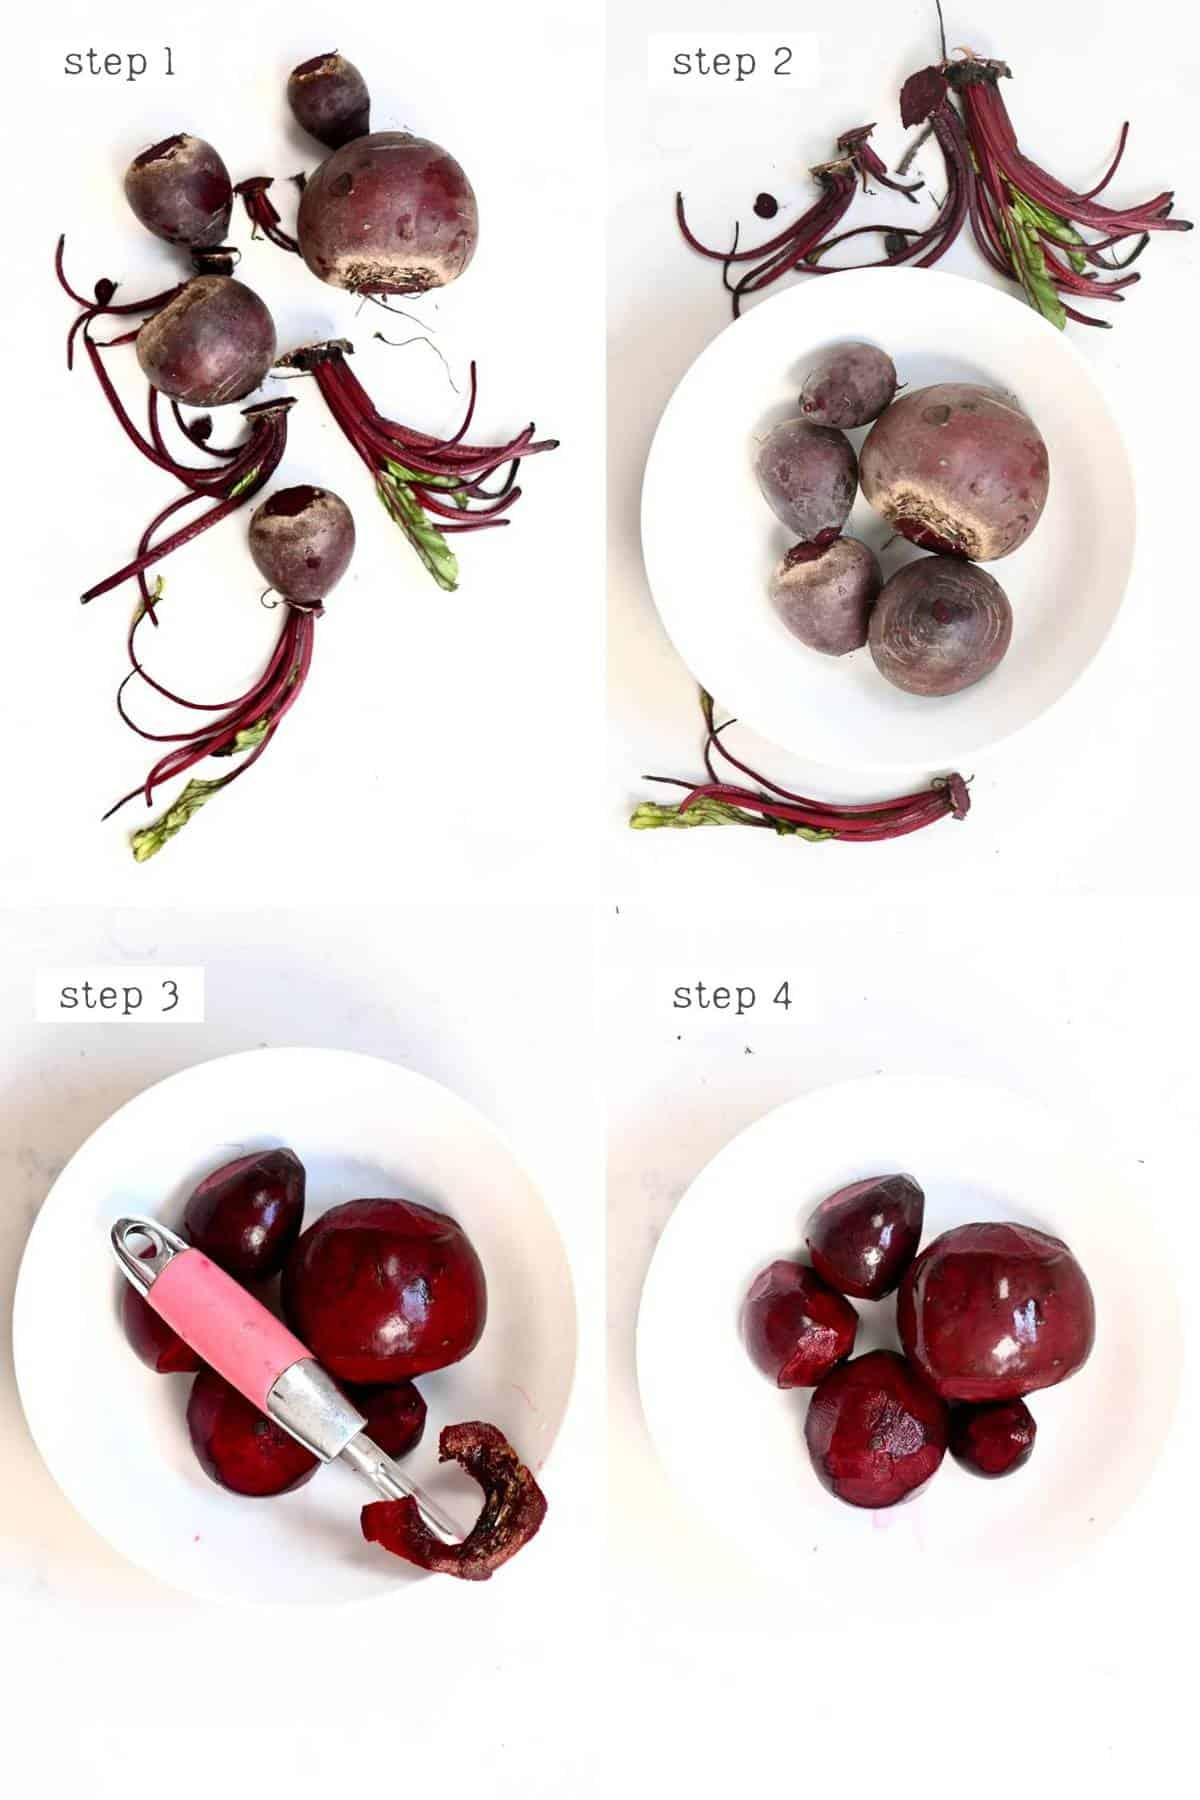 steps for cleaning beetroot